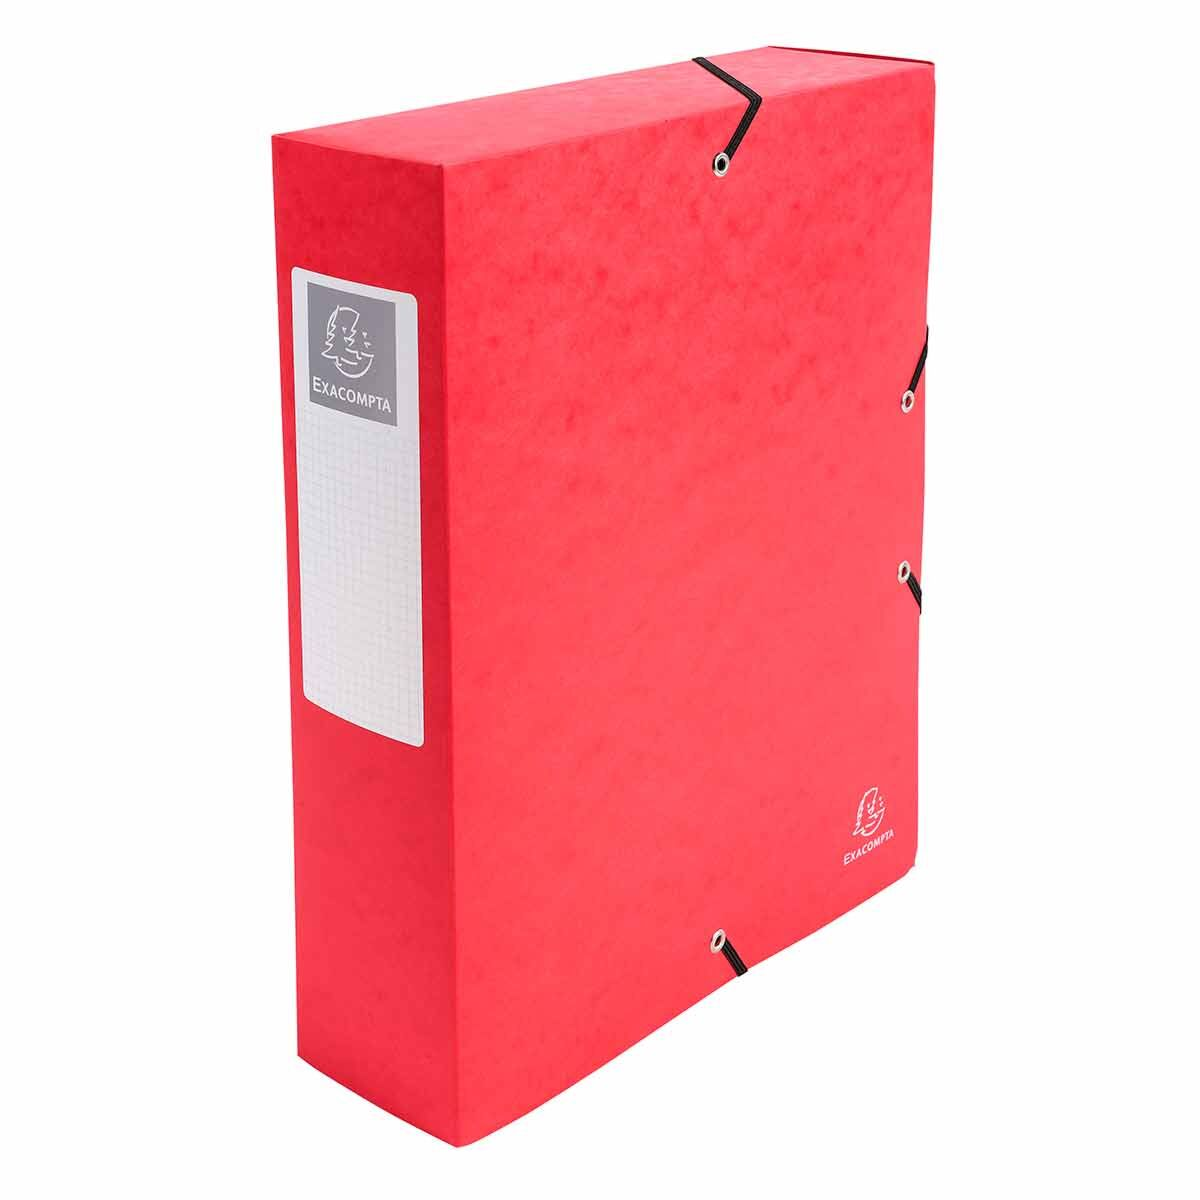 Exacompta Elasticated Box File Pressboard A4 80mm Pack of 6 Red